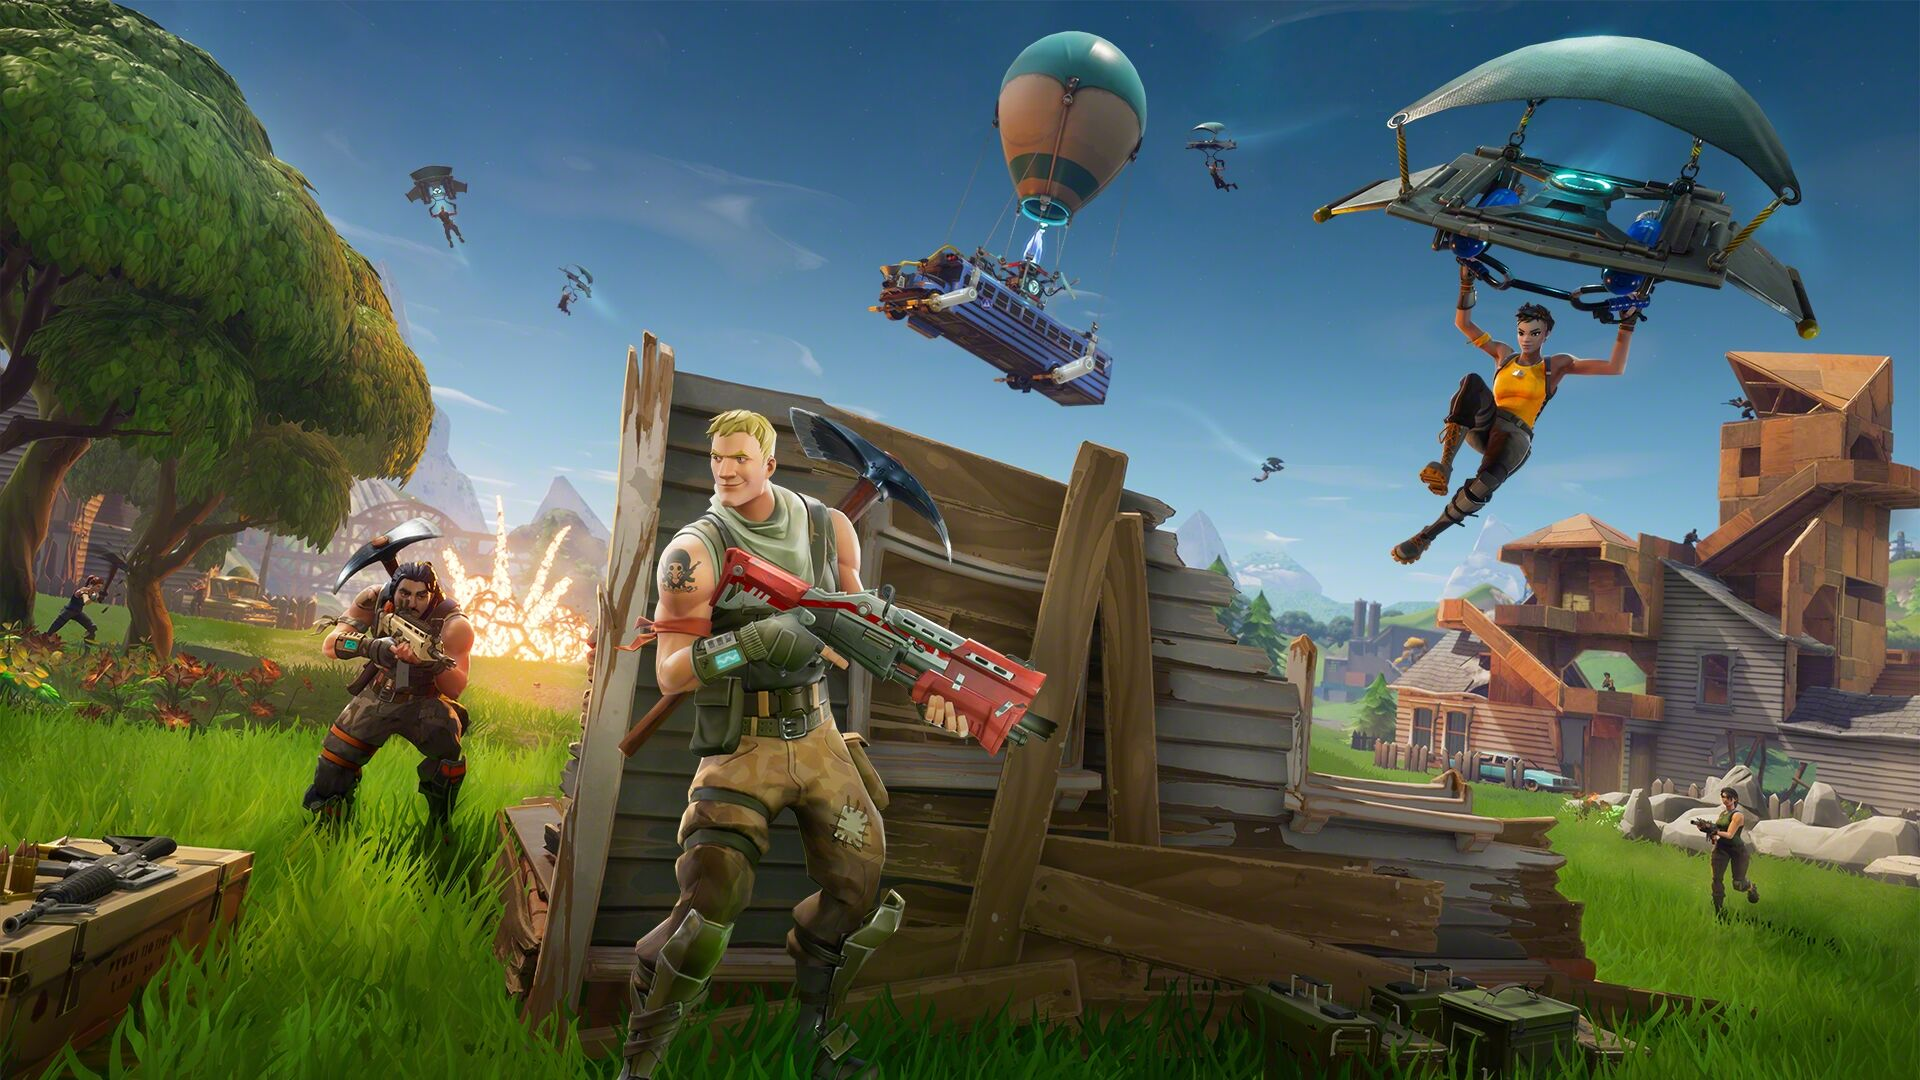 Fortnite: Is the return of Glider Redeploy welcomed? (POLL)